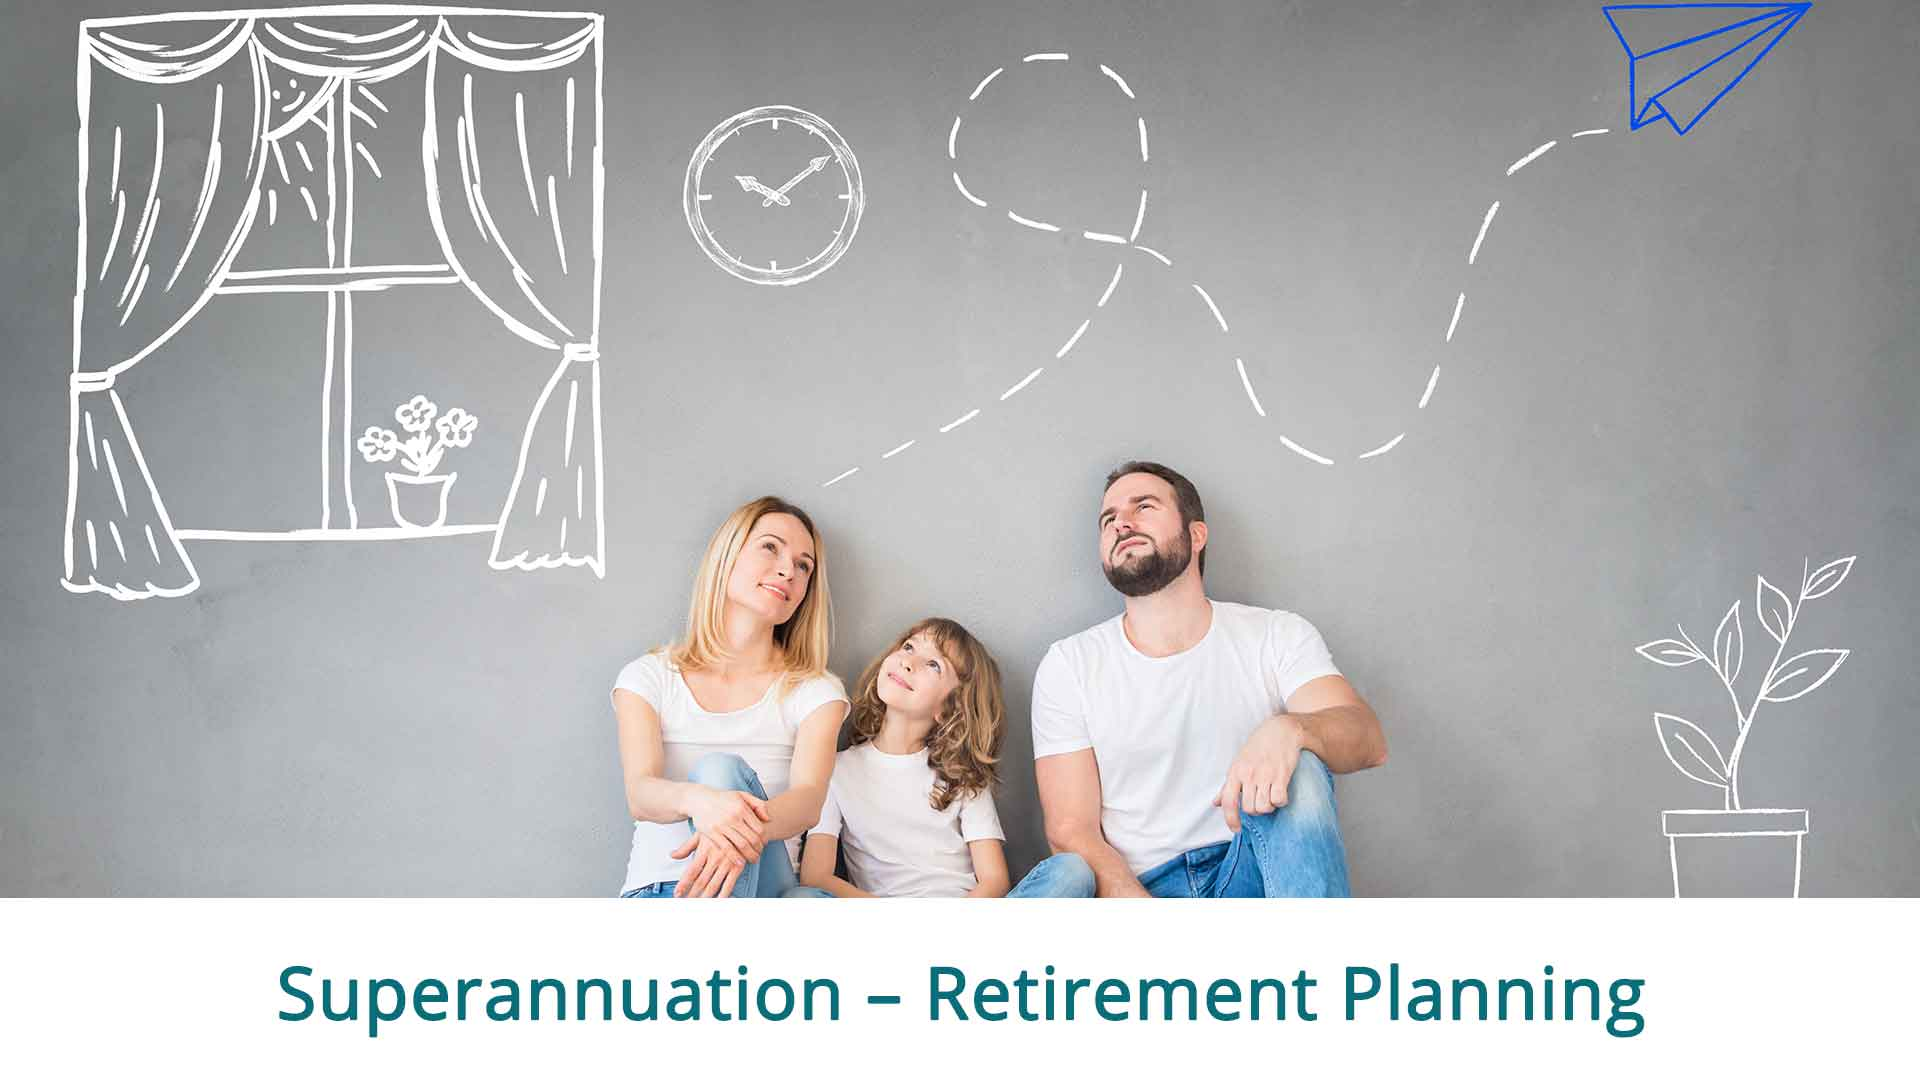 Murray-Mallee-Financial-Planning-Advice-3-Superannuation-Retirement-Planning